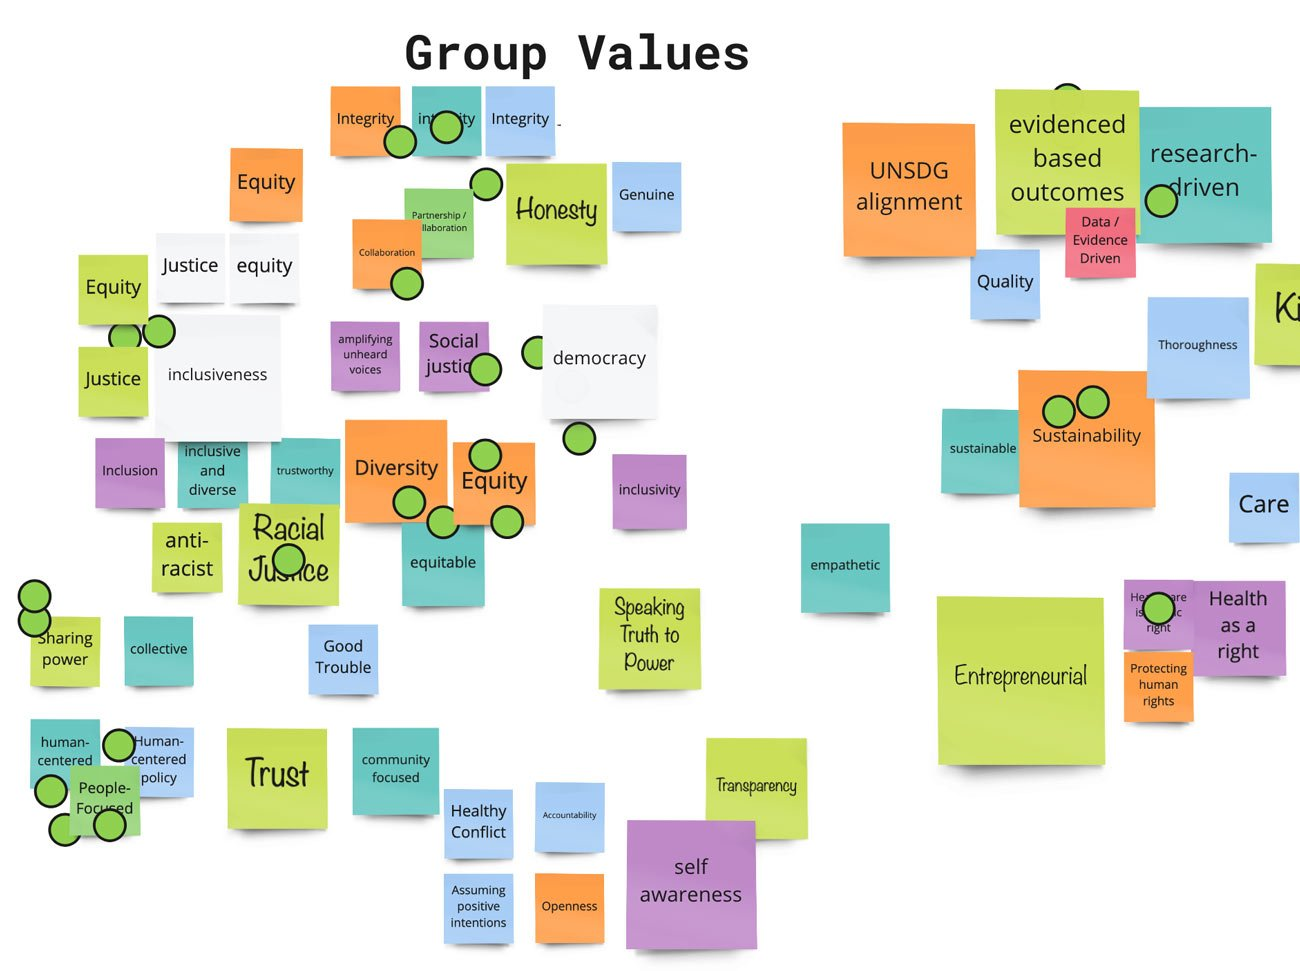 Human-centered policy design workshop - values excercising